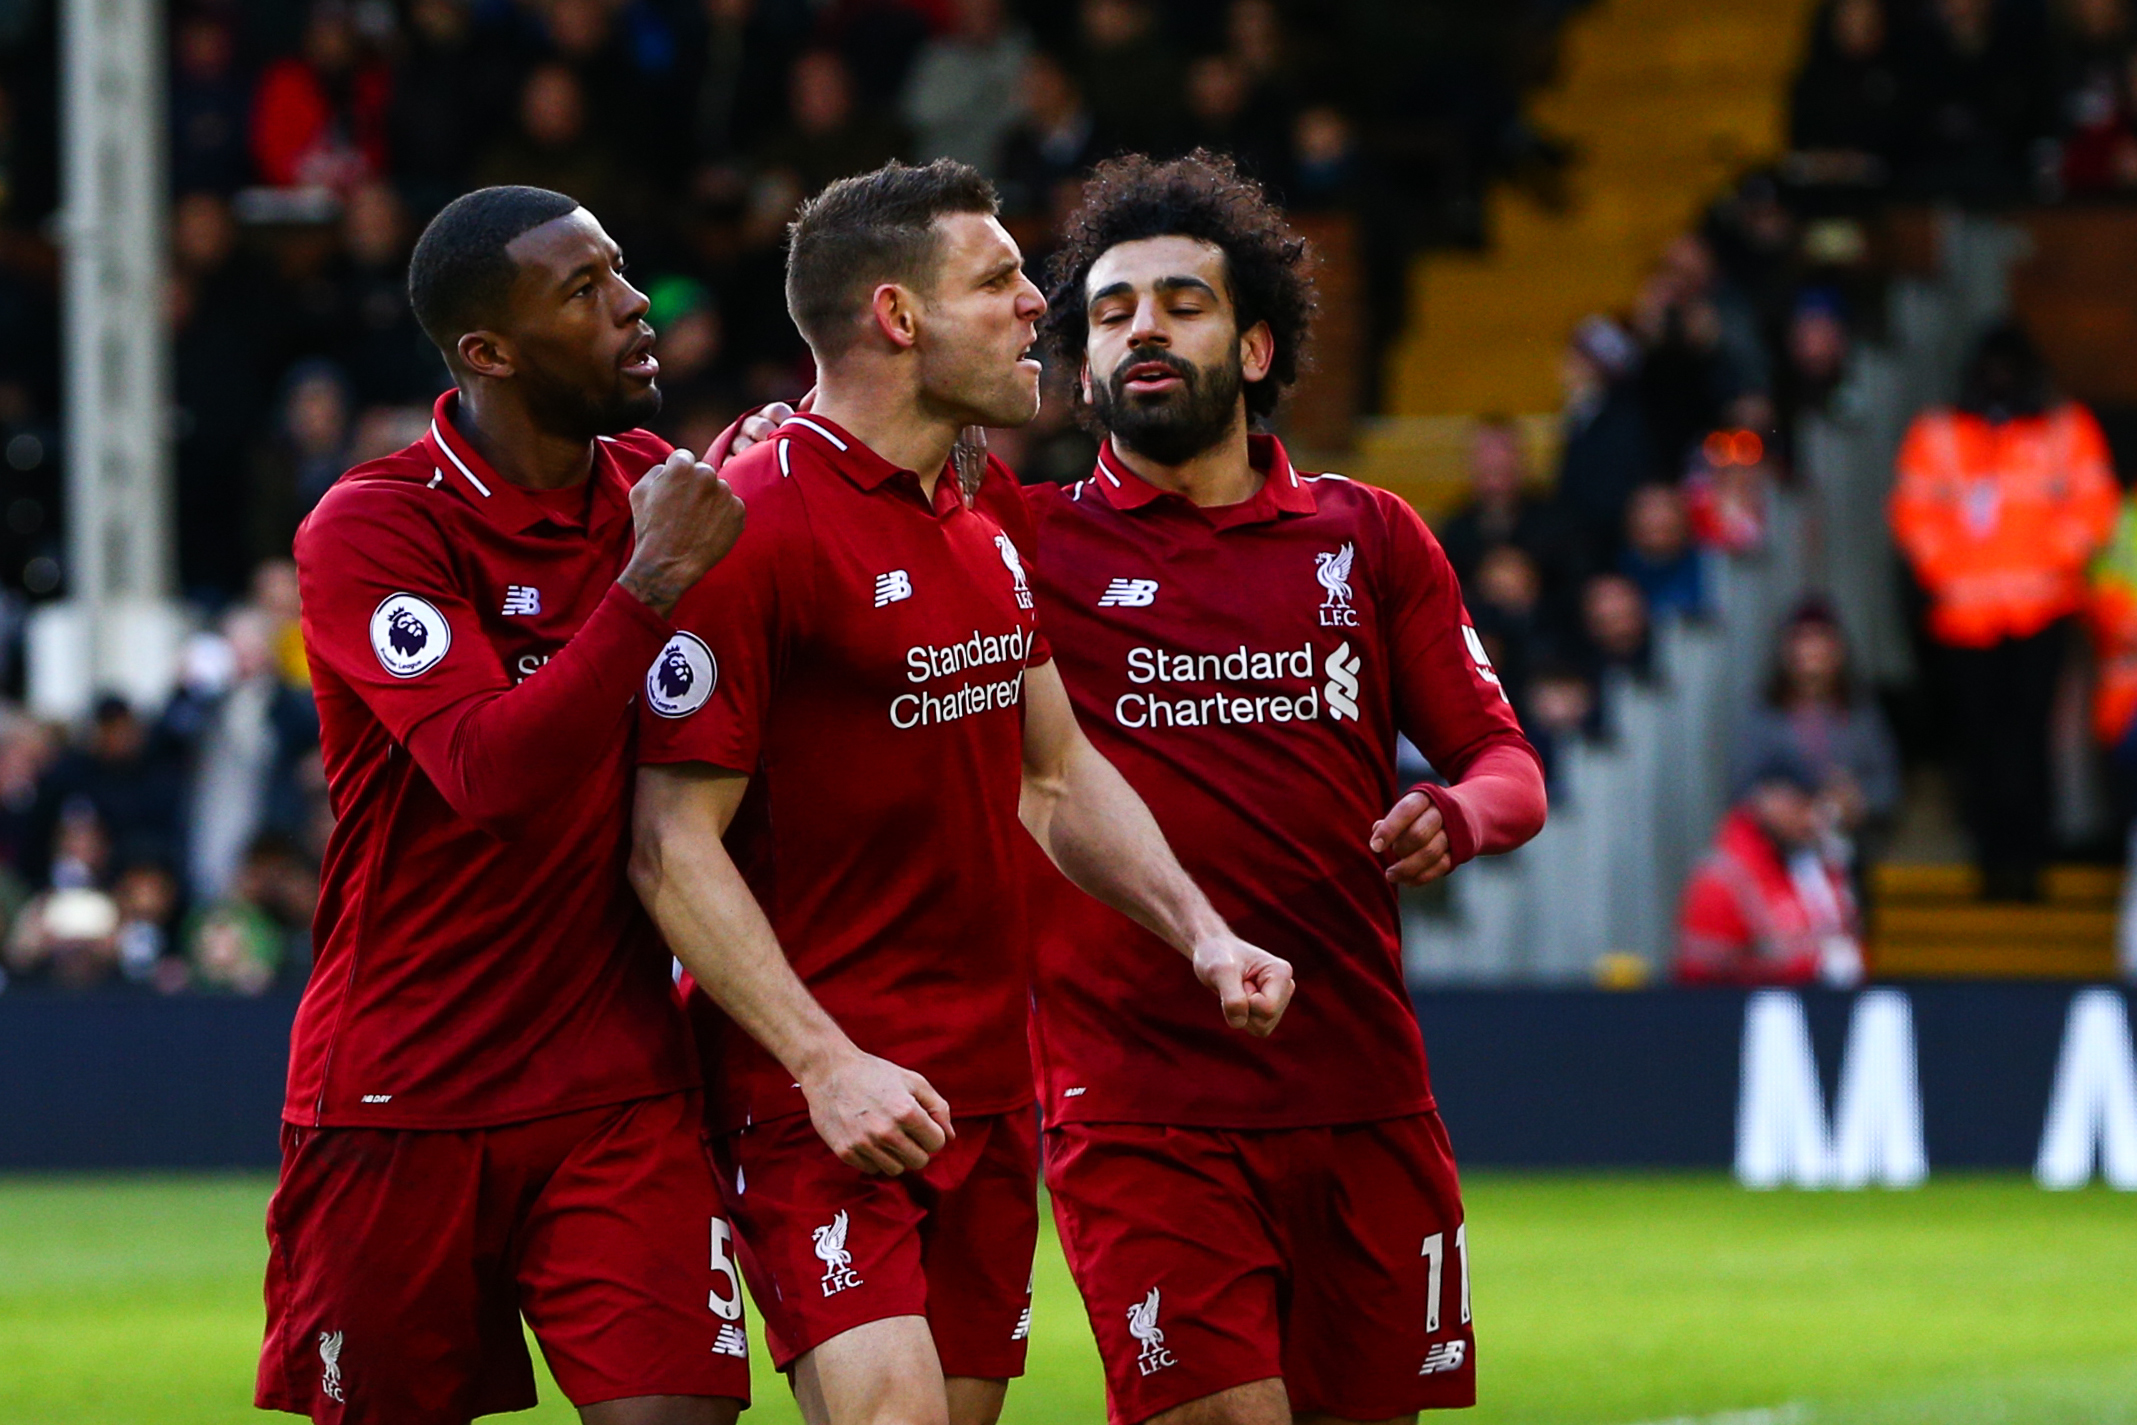 Fulham 1-2 Liverpool: 5 things we learned